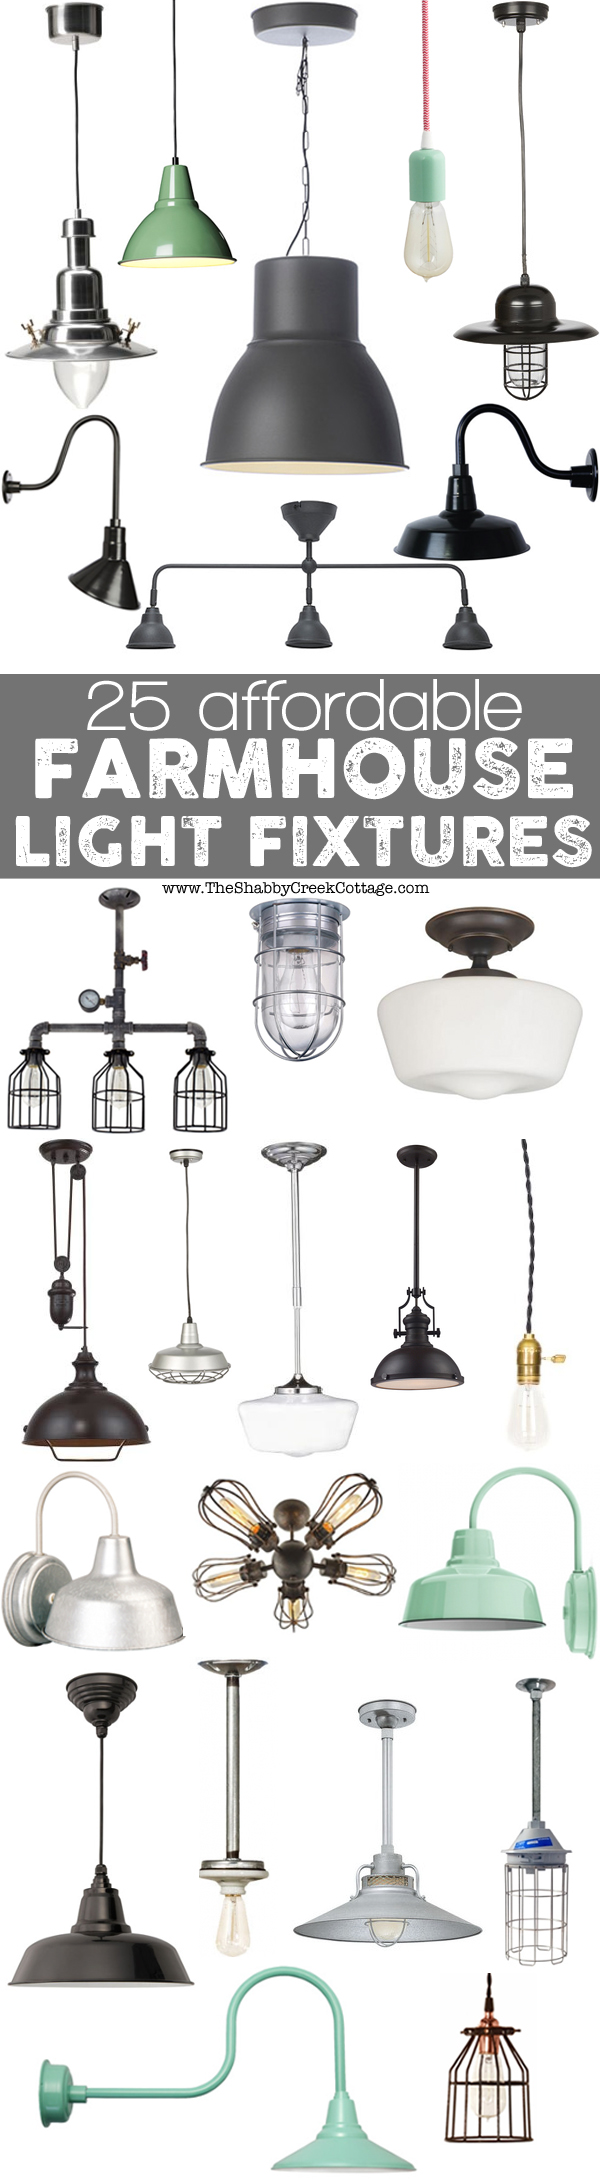 Farmhouse light fixtures25 affordable farmhouse light fixtures. Farmhouse Lighting Fixtures. Home Design Ideas